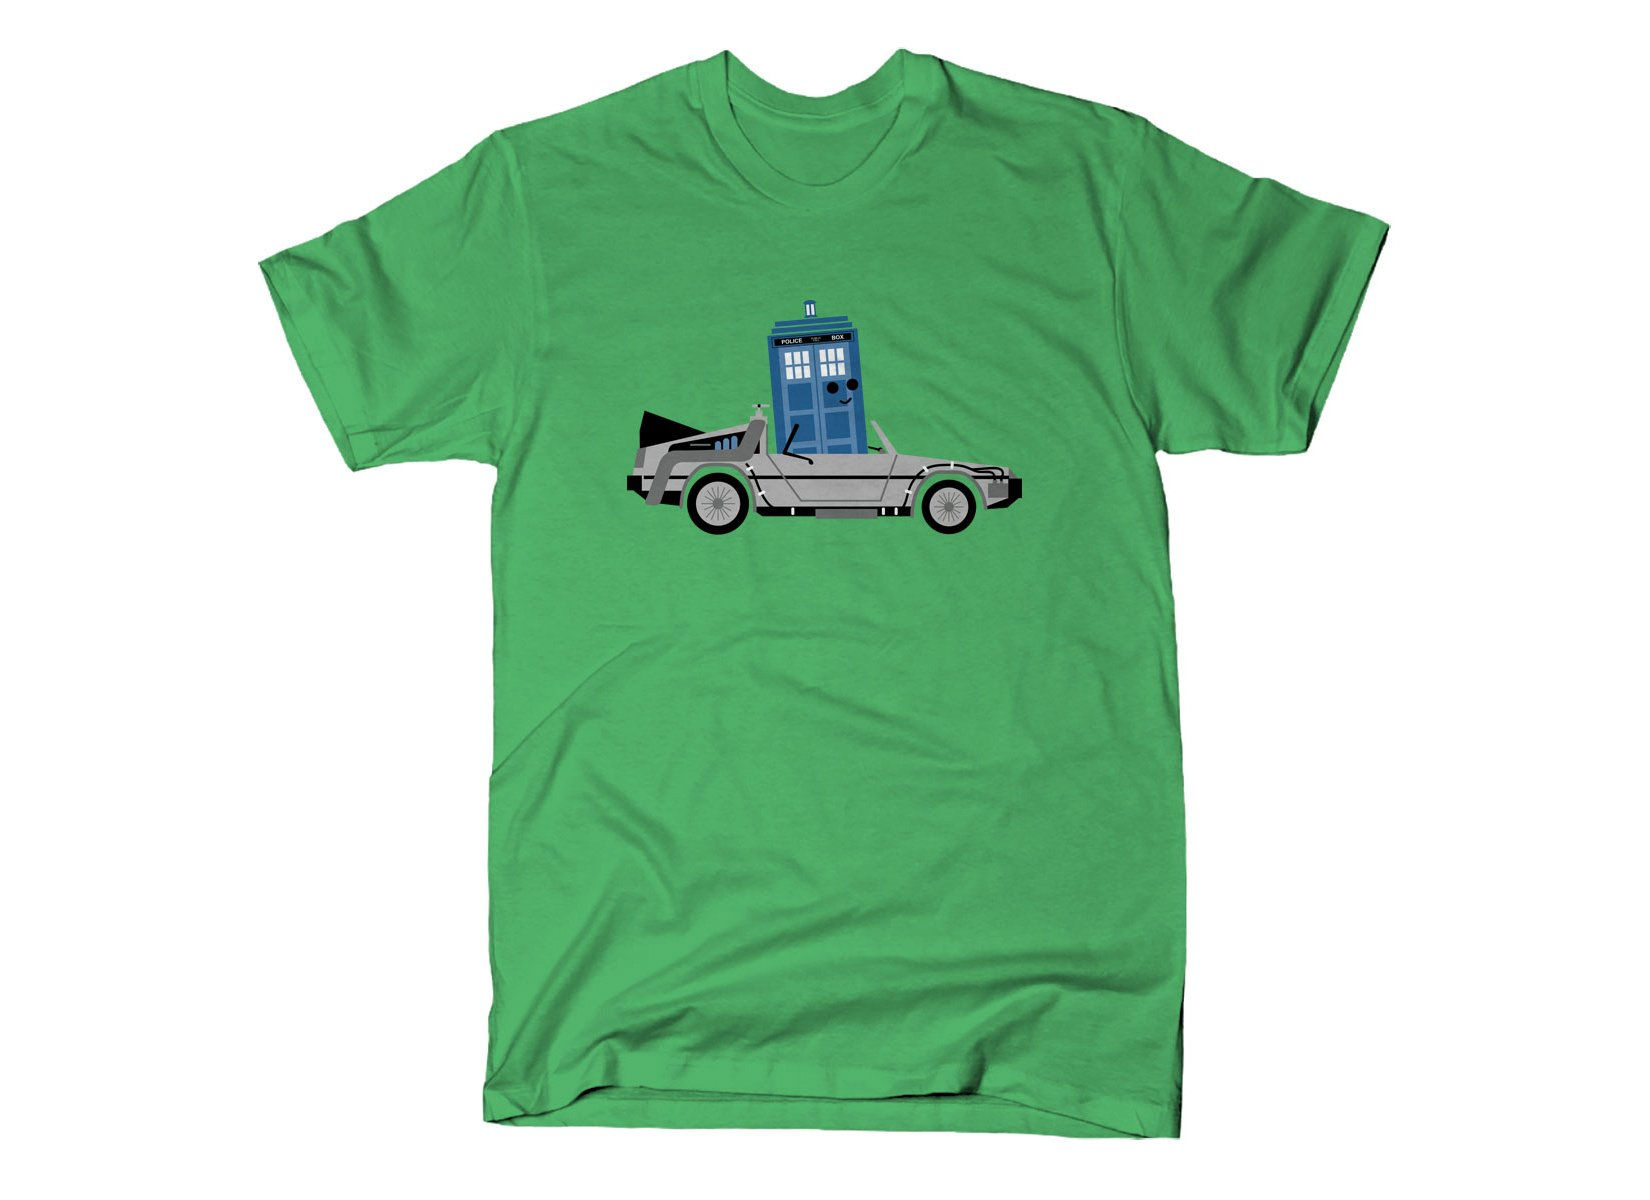 Time Machine x Two on Mens T-Shirt